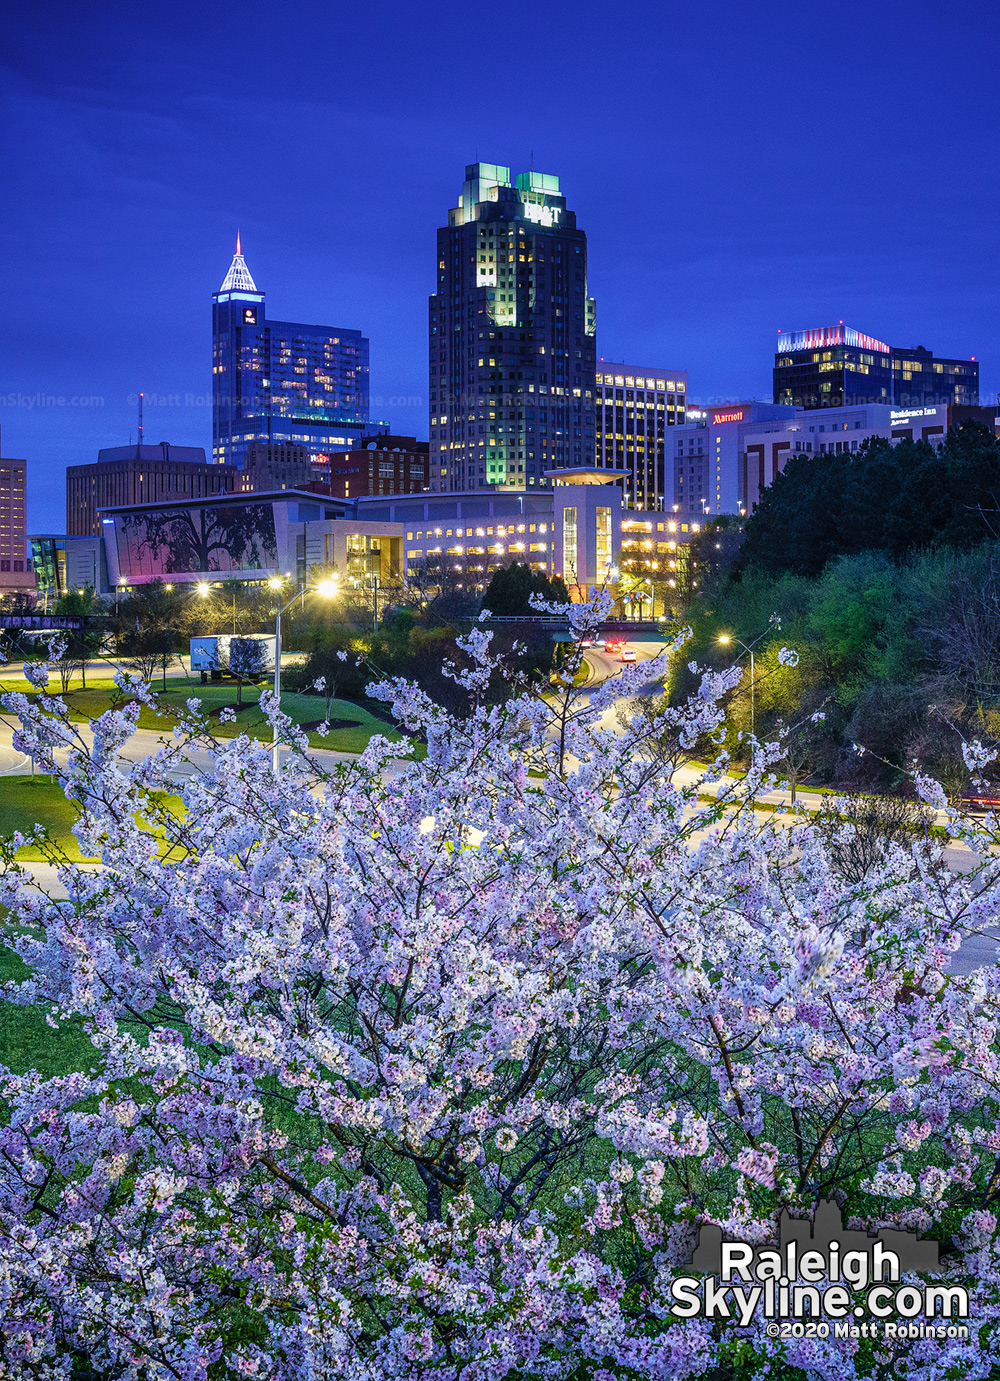 Blooming cherry blossoms provide a bright spot in Raleigh